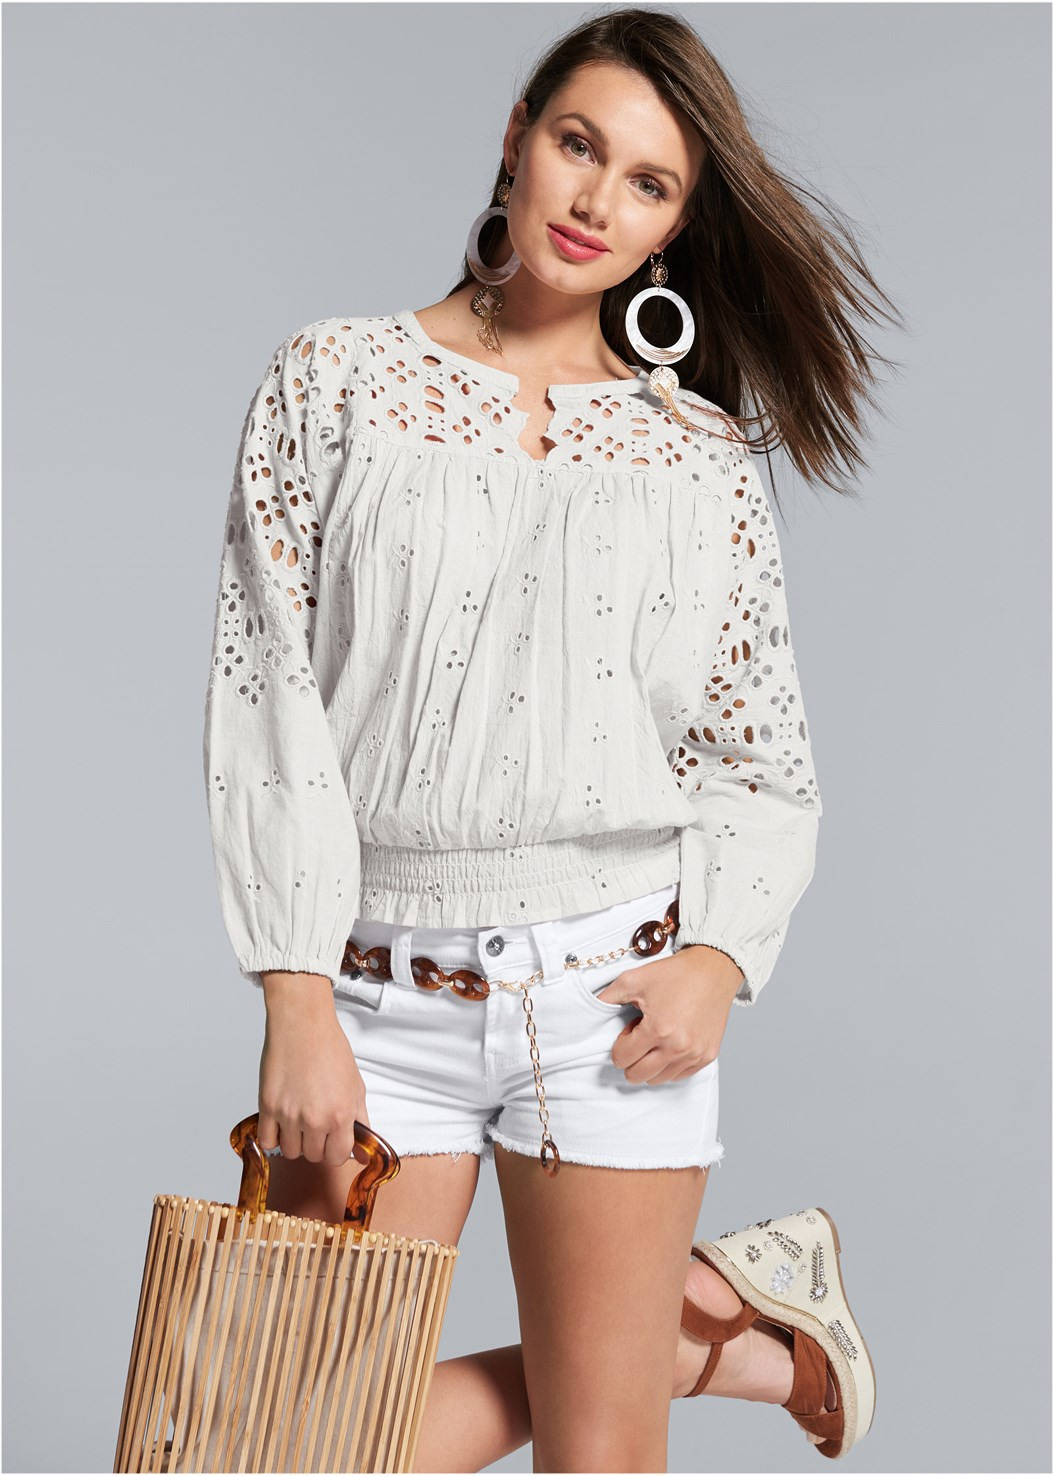 Smocked Waist Eyelet Top,Naked T-Shirt Bra,Frayed Cut Off Jean Shorts,Embellished Wedges,Oversized Tassel Earrings,Wooden Handbag